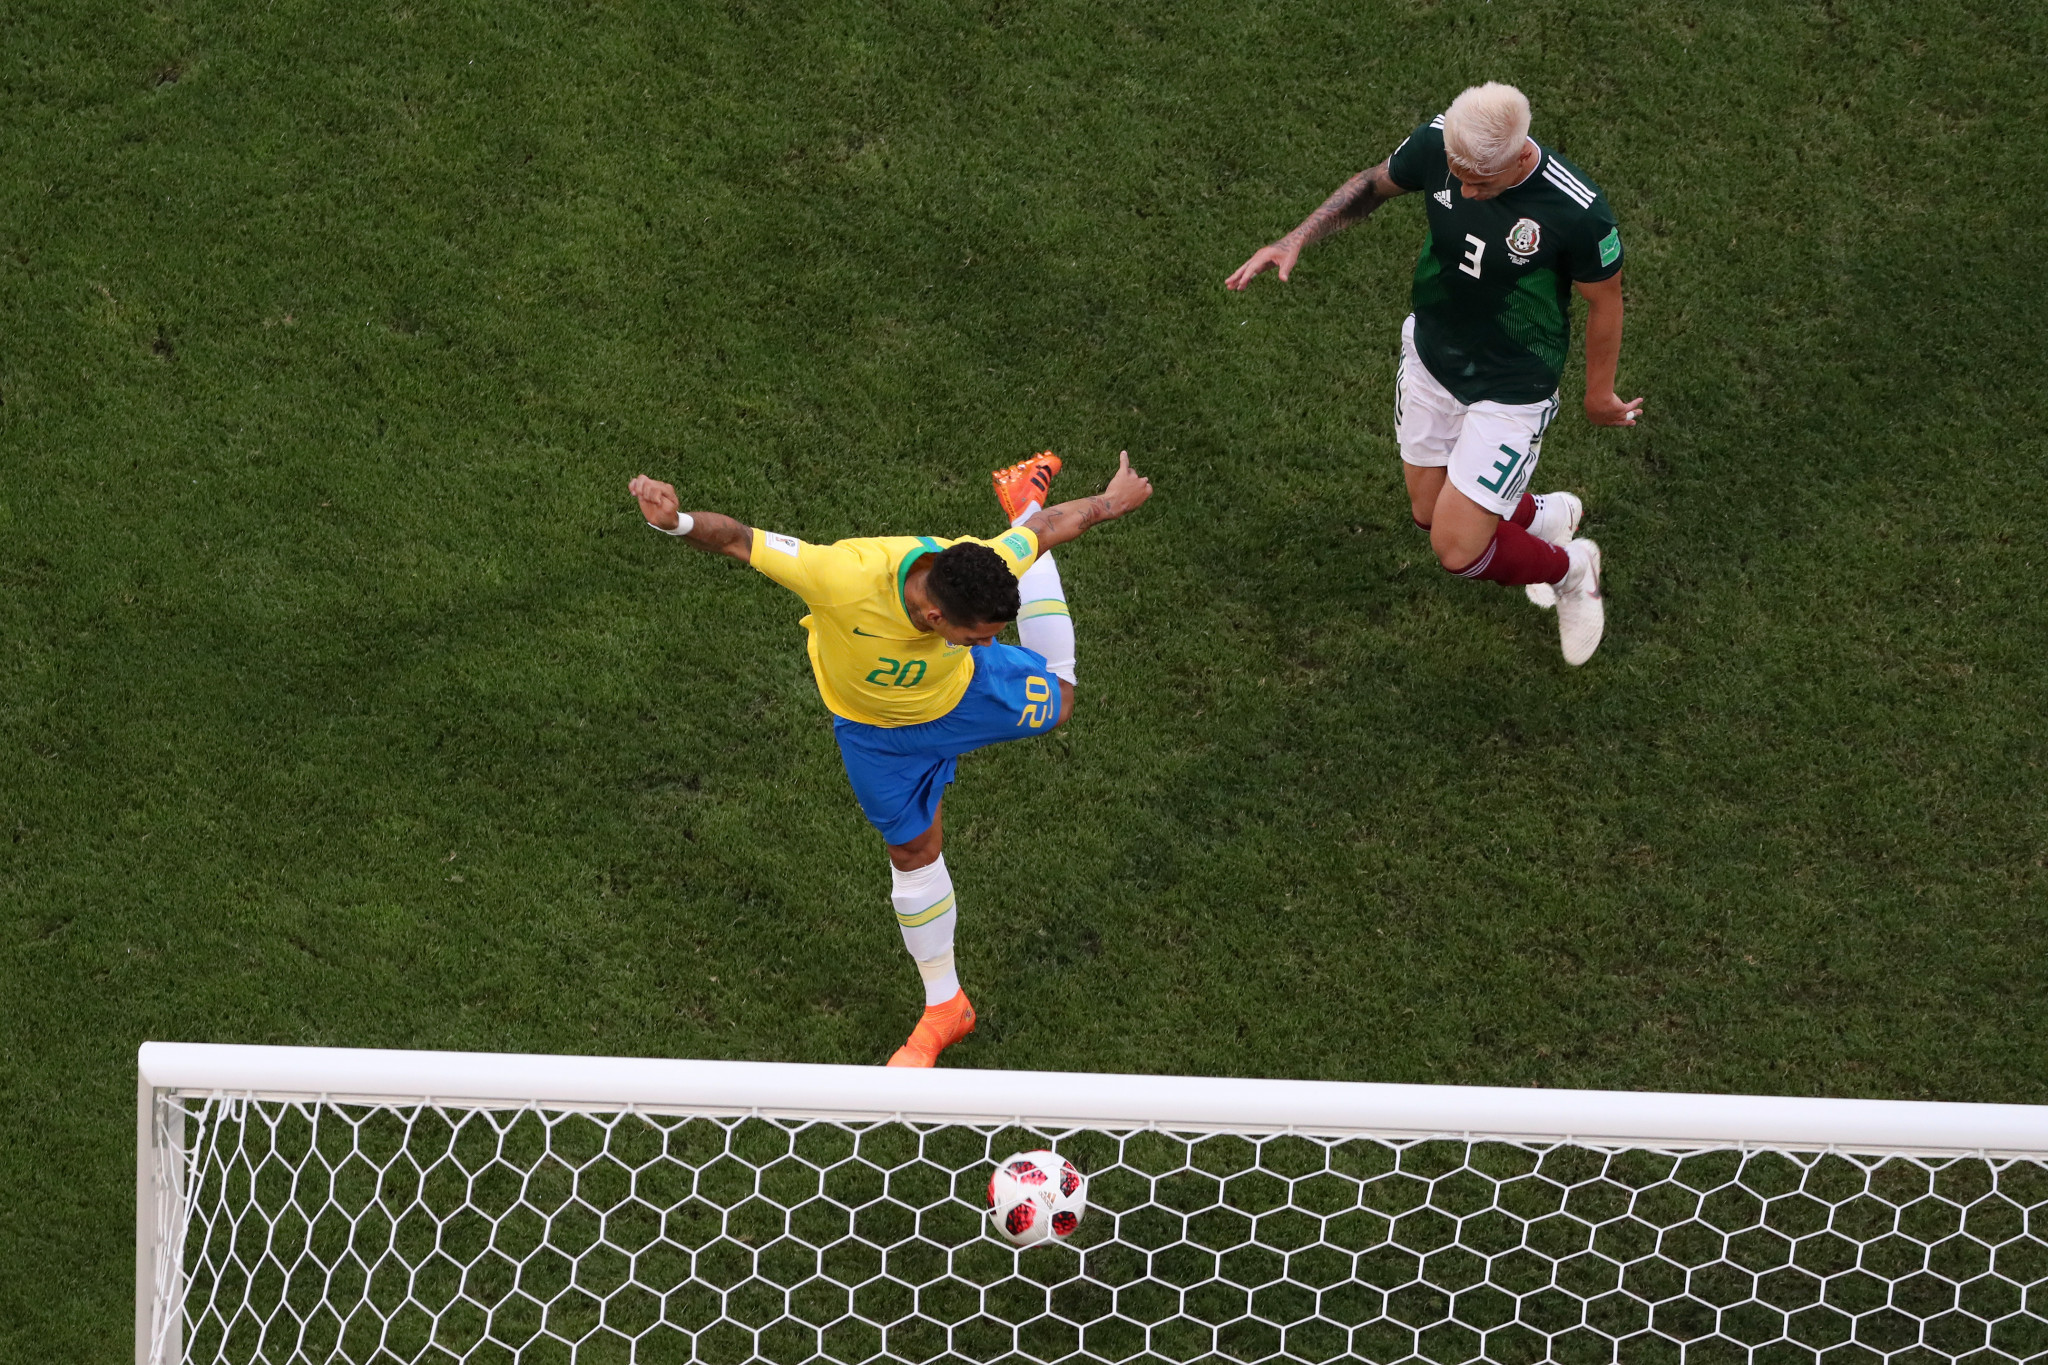 Roberto Firmino scored a second late on to give Brazil a 2-0 win against Mexico ©Getty Images